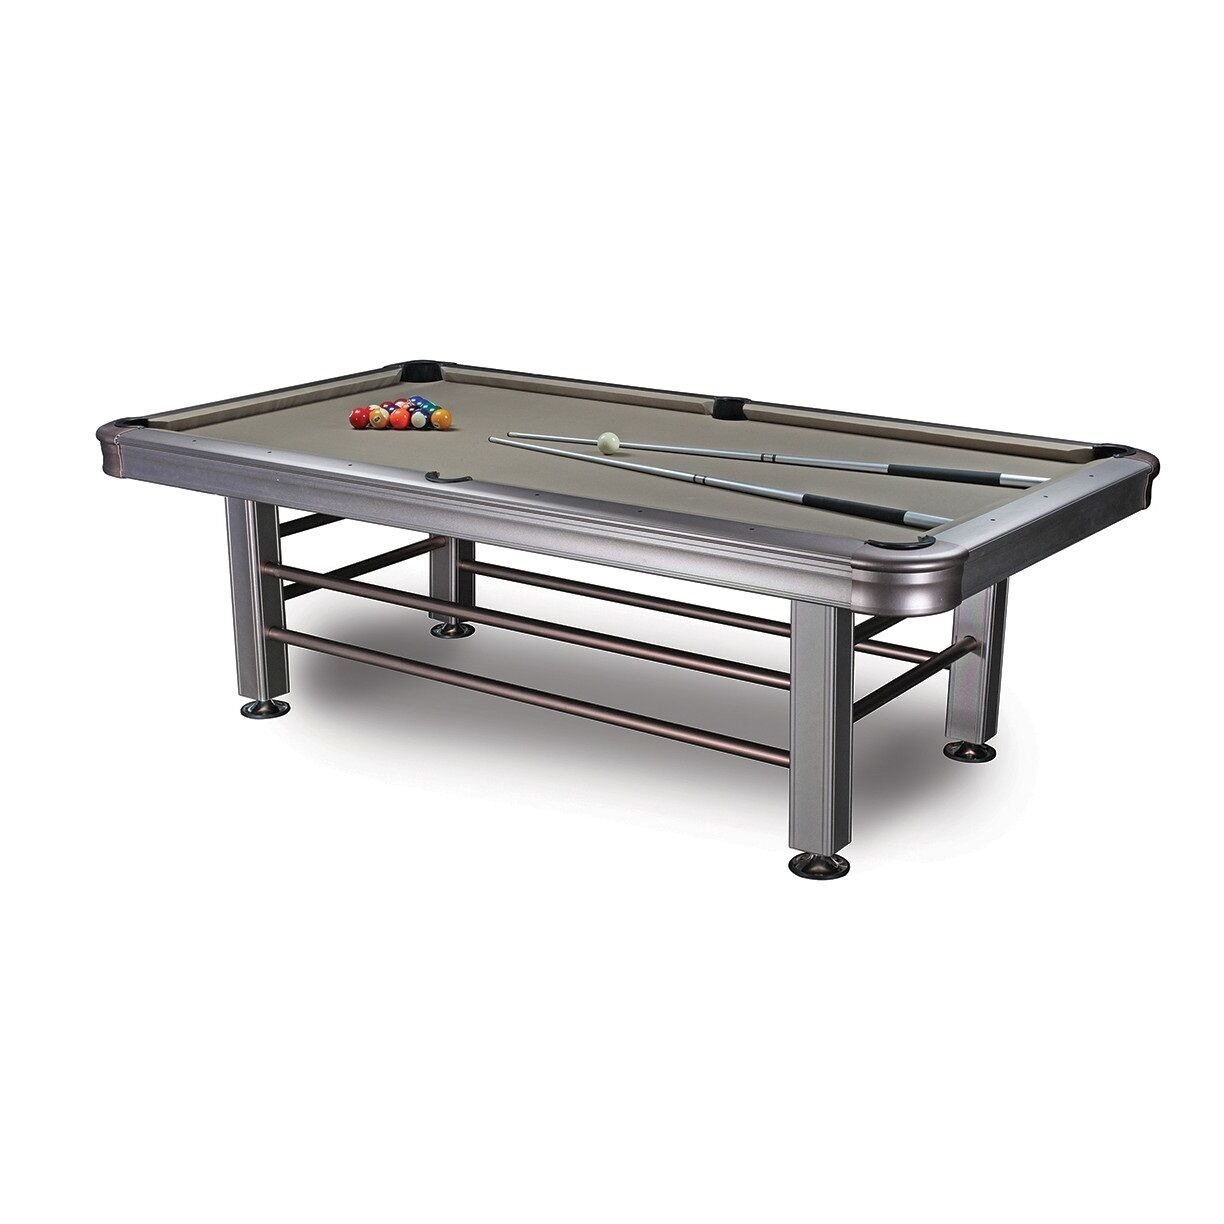 8' Tropicana Outdoor Pool Table - Accessories Included